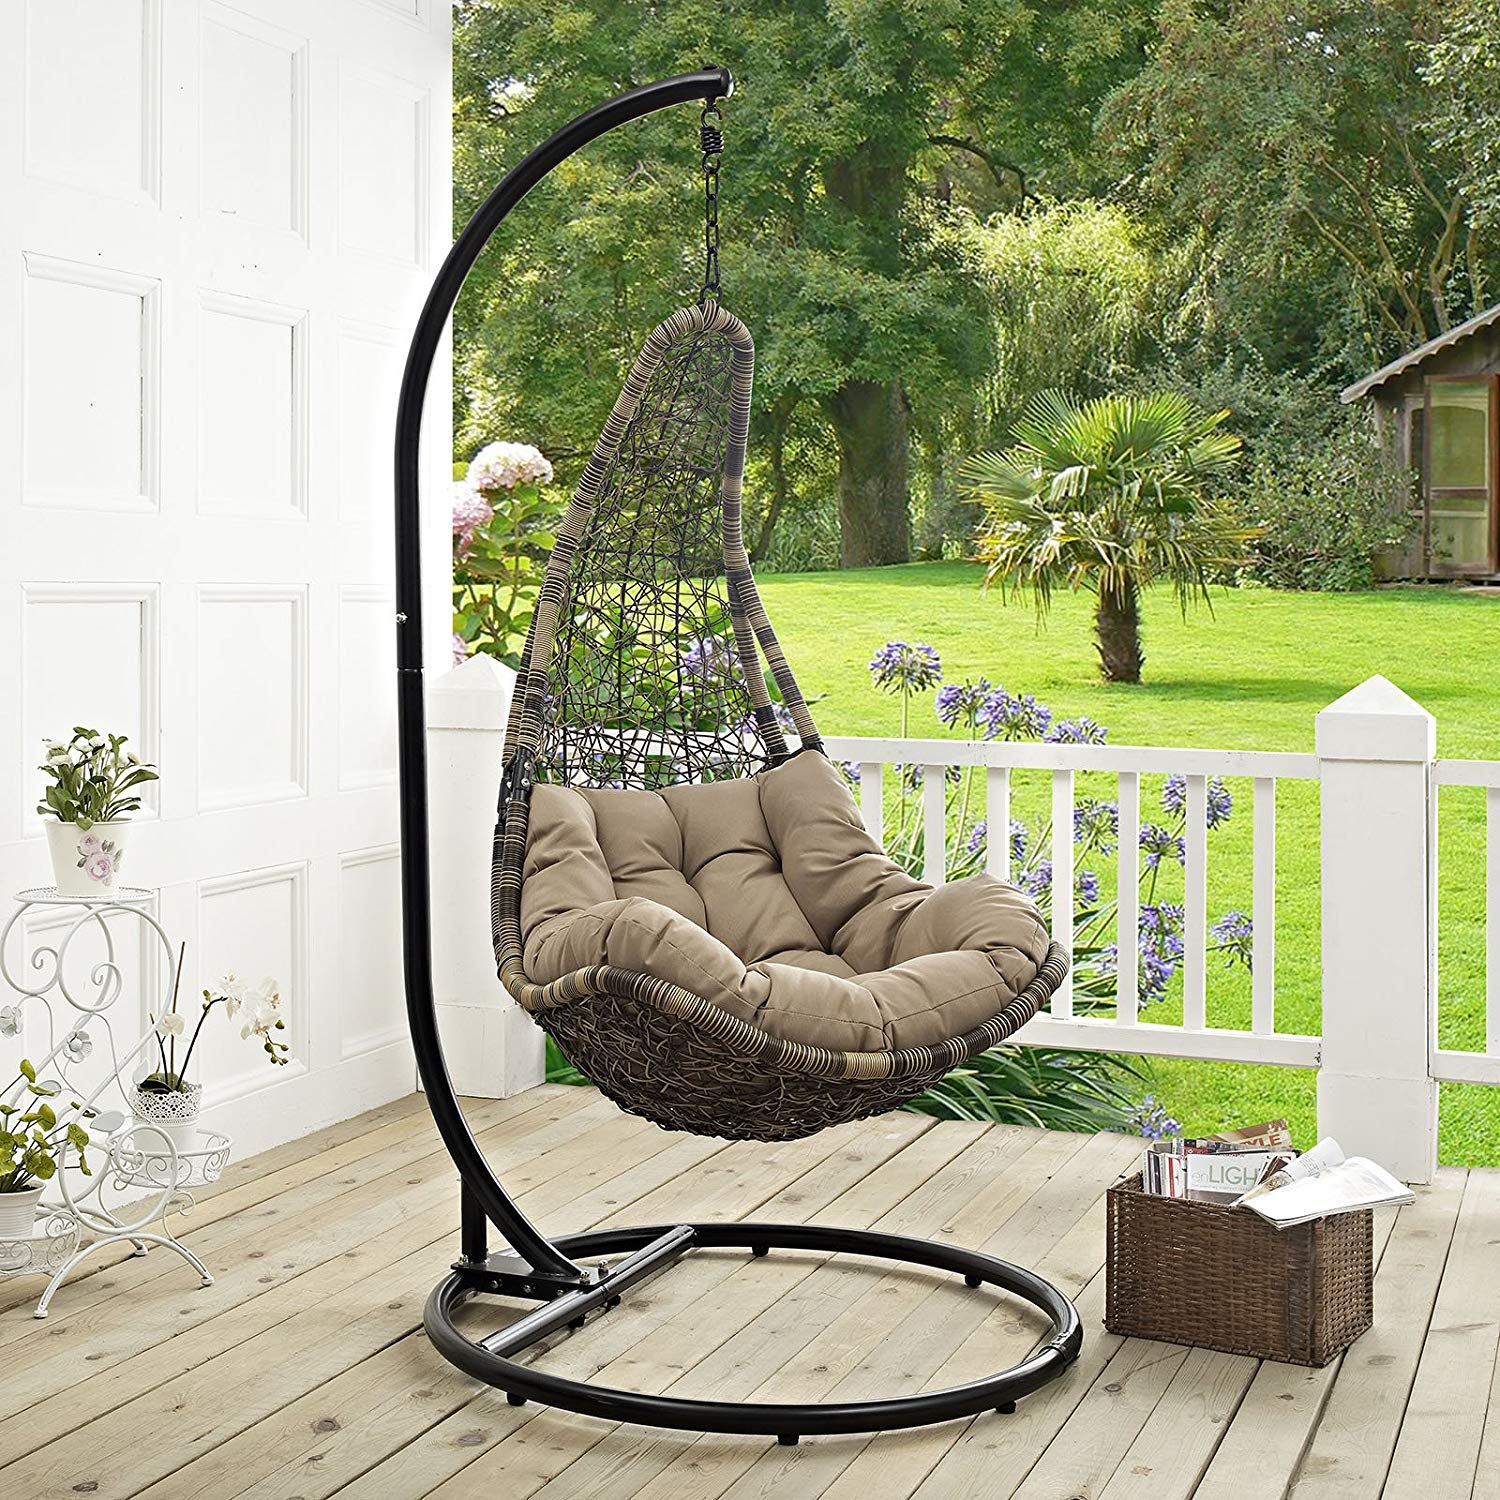 Brown Lounge Swing Chair Set with Stand Modway